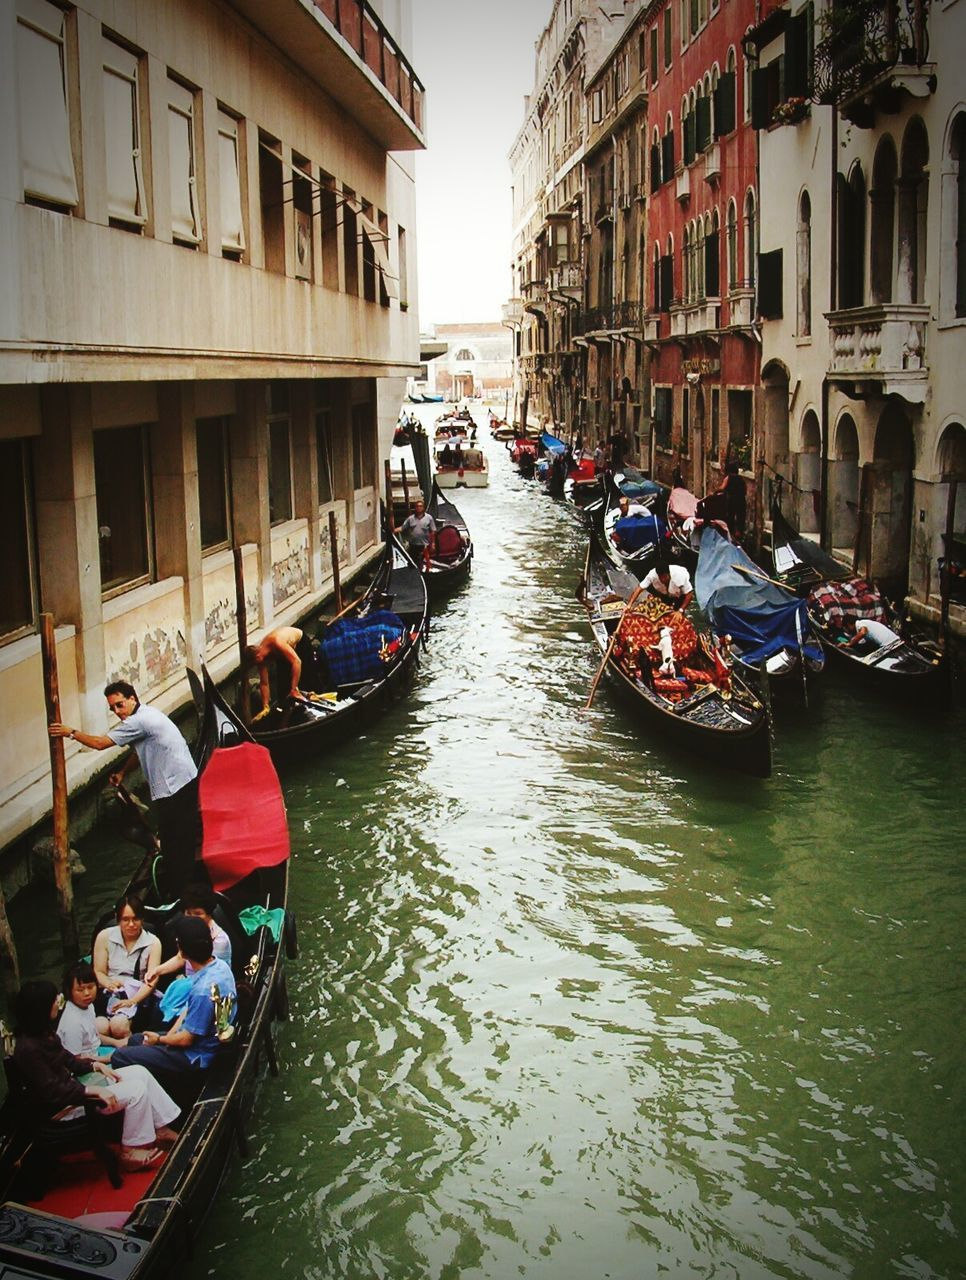 nautical vessel, canal, transportation, architecture, mode of transport, building exterior, gondola - traditional boat, gondola, real people, built structure, boat, gondolier, men, water, travel destinations, large group of people, day, tourism, travel, outdoors, waterfront, moored, women, vacations, oar, rowing, city, people